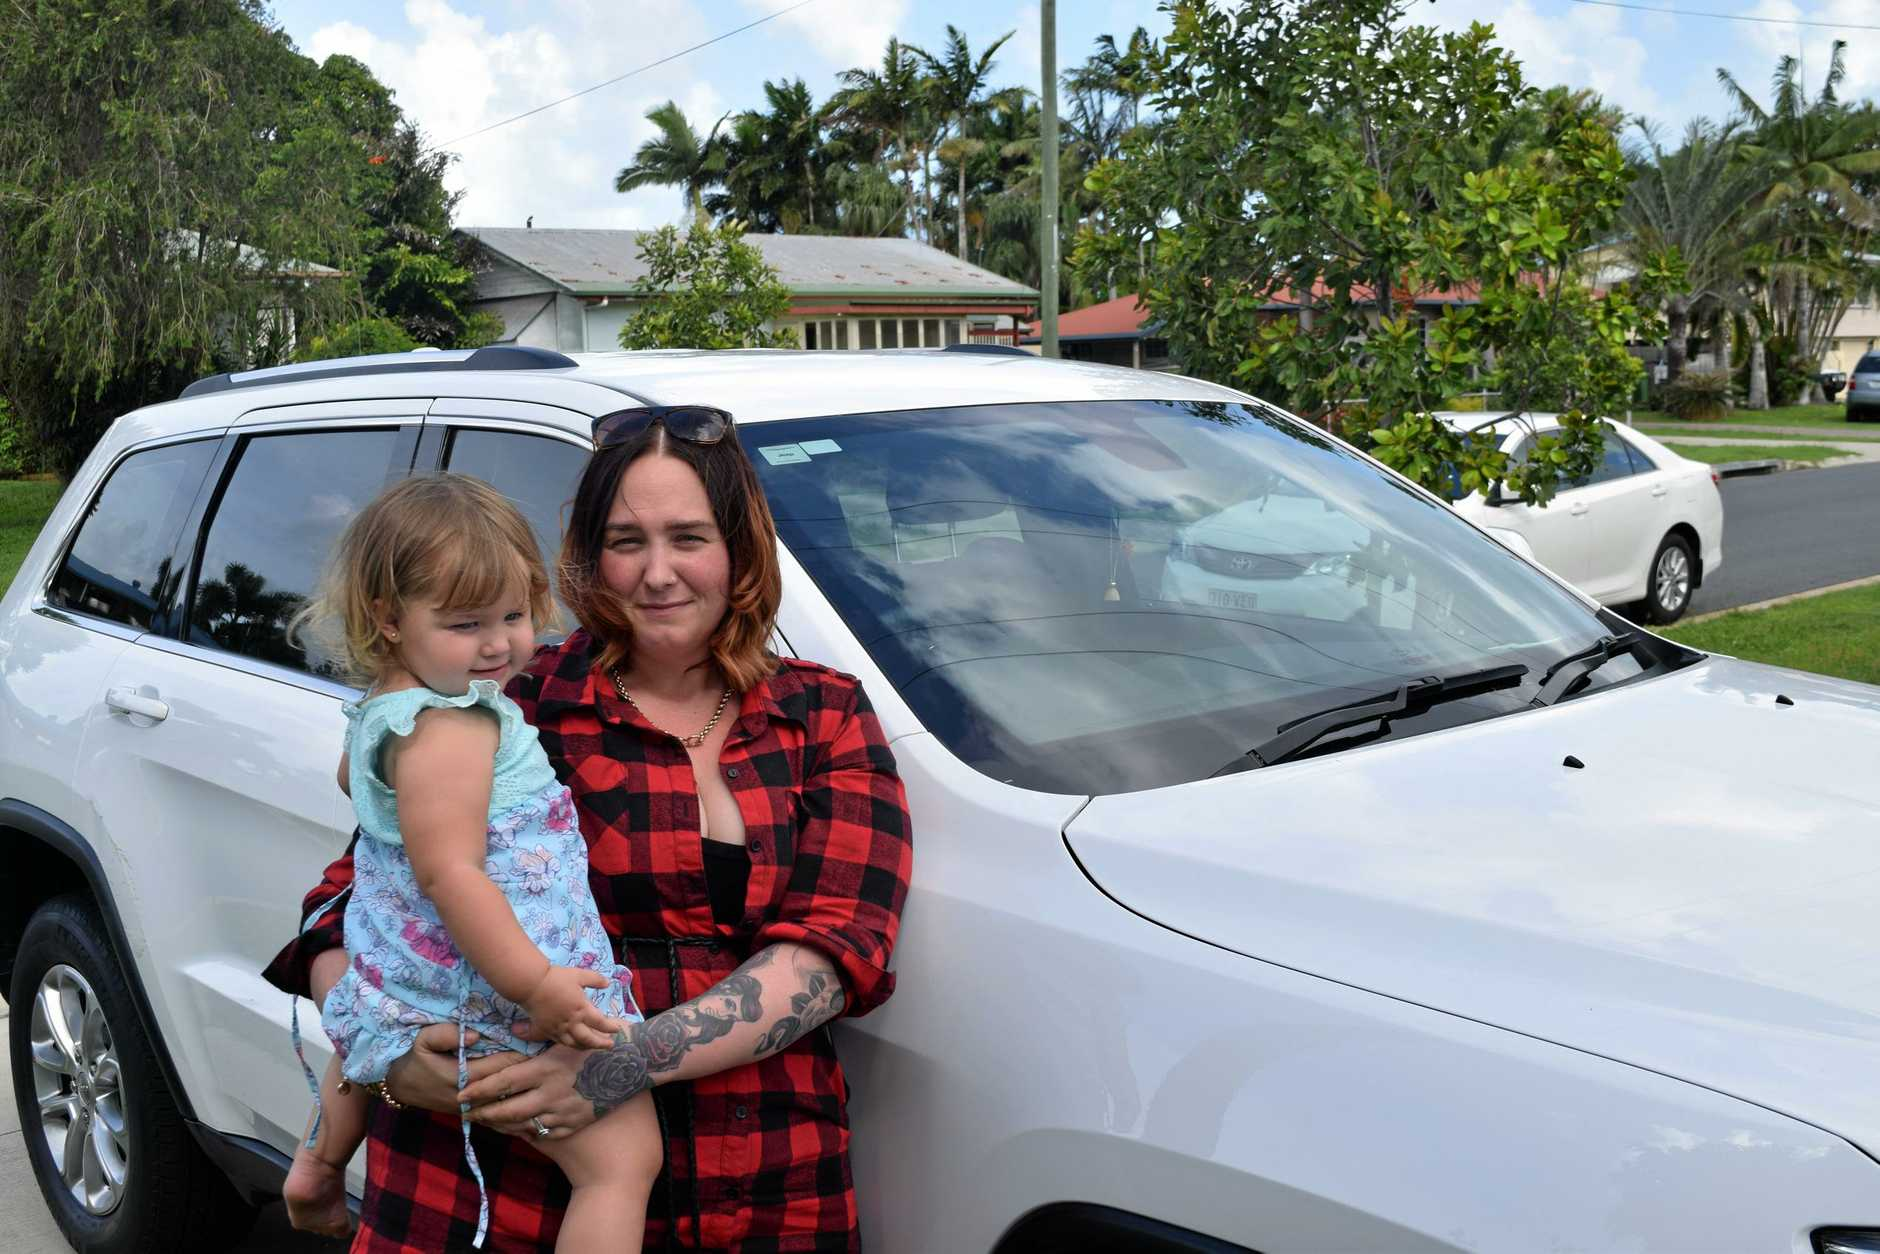 DOUBLE TROUBLE: Mother of three Danielle Nielsen had her car stolen twice in four days from her family's driveway.